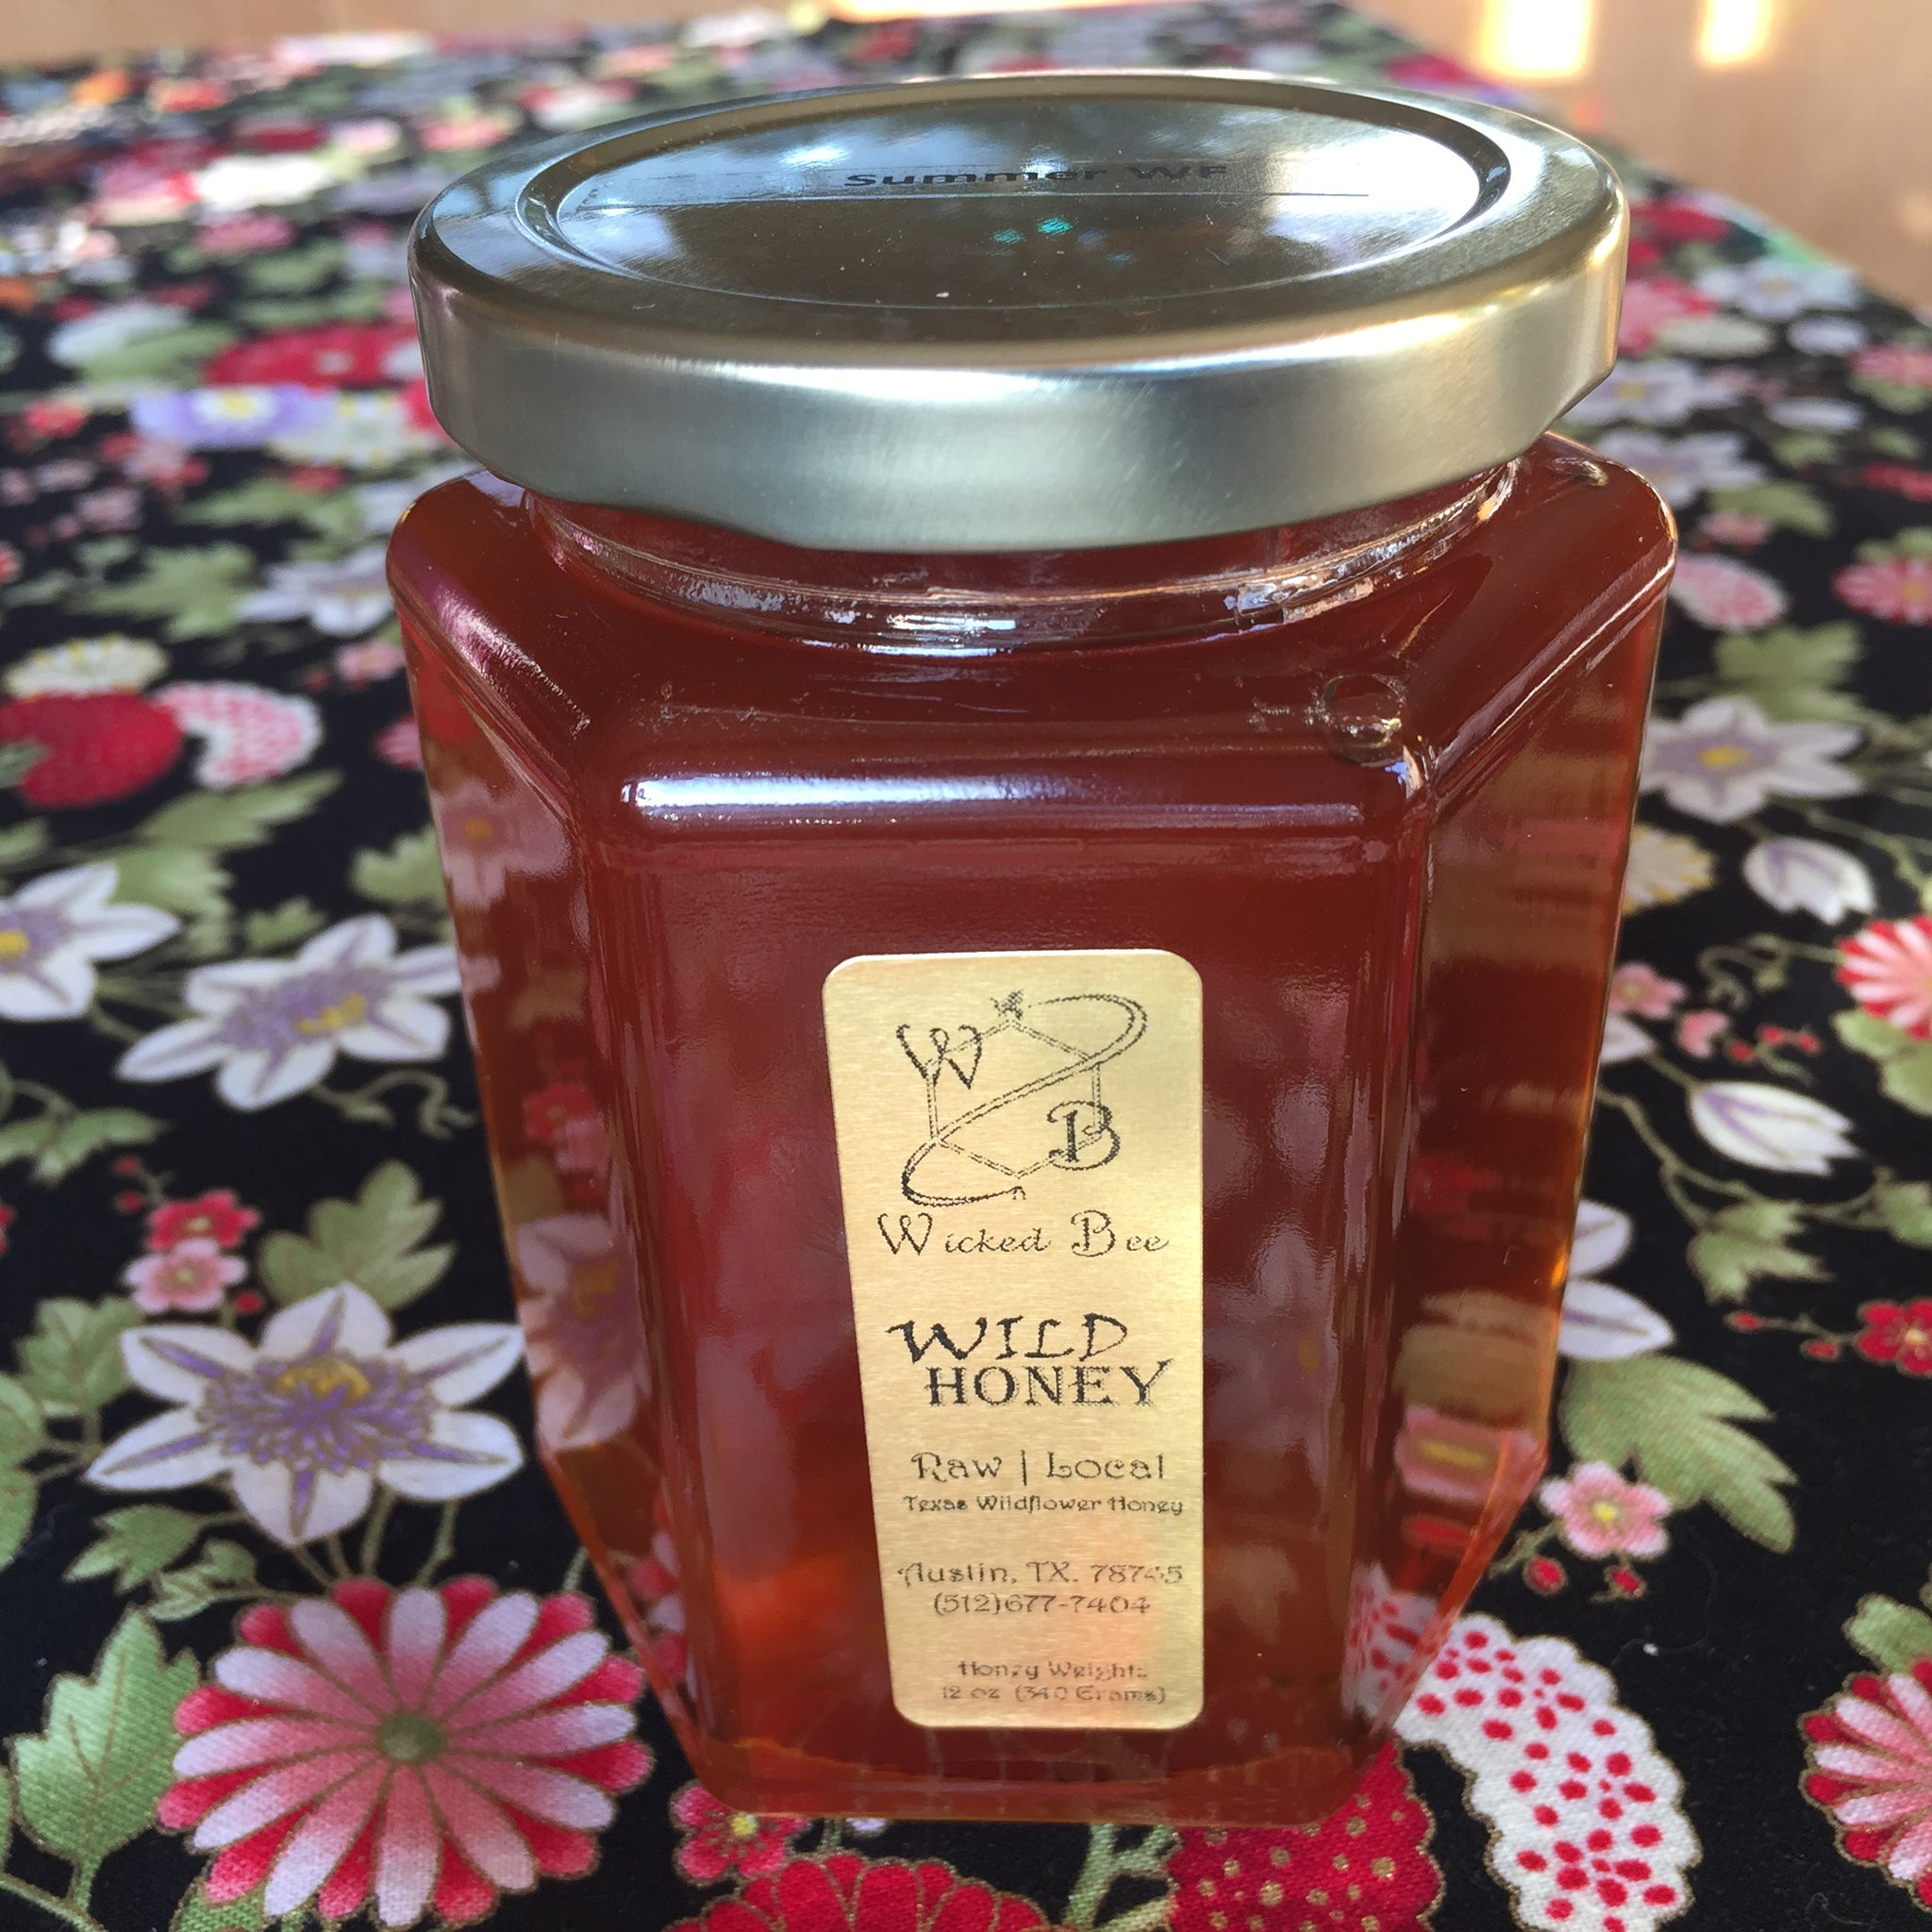 Wicked Bee Wild Honey (Summer WF)